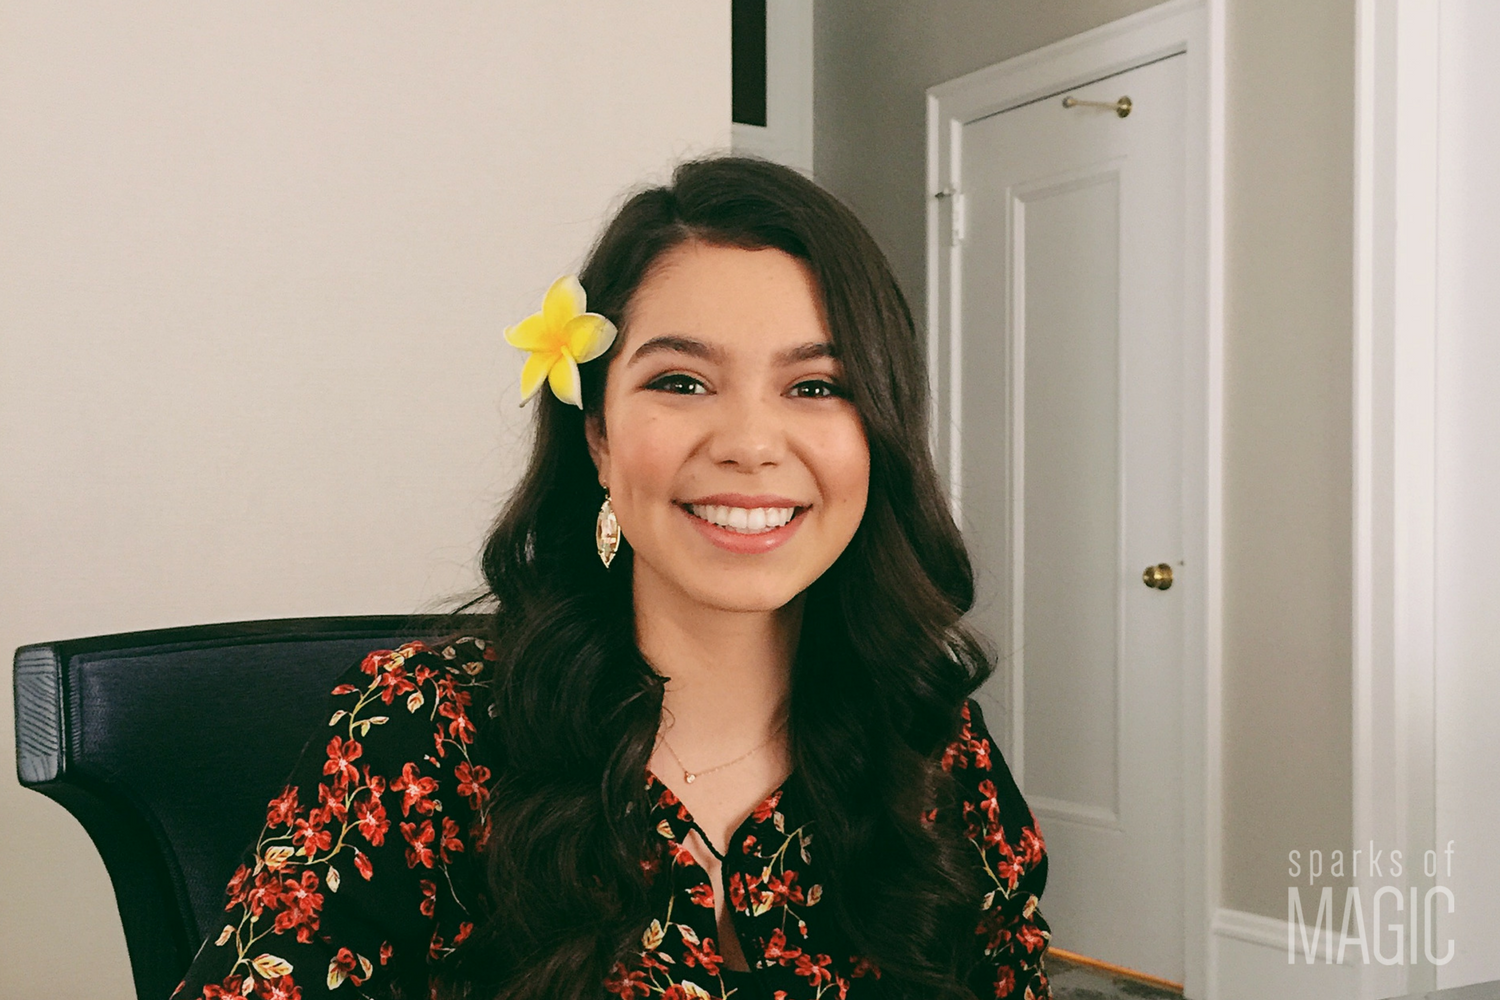 AuliiCravalho-Moana-Sparks of Magic